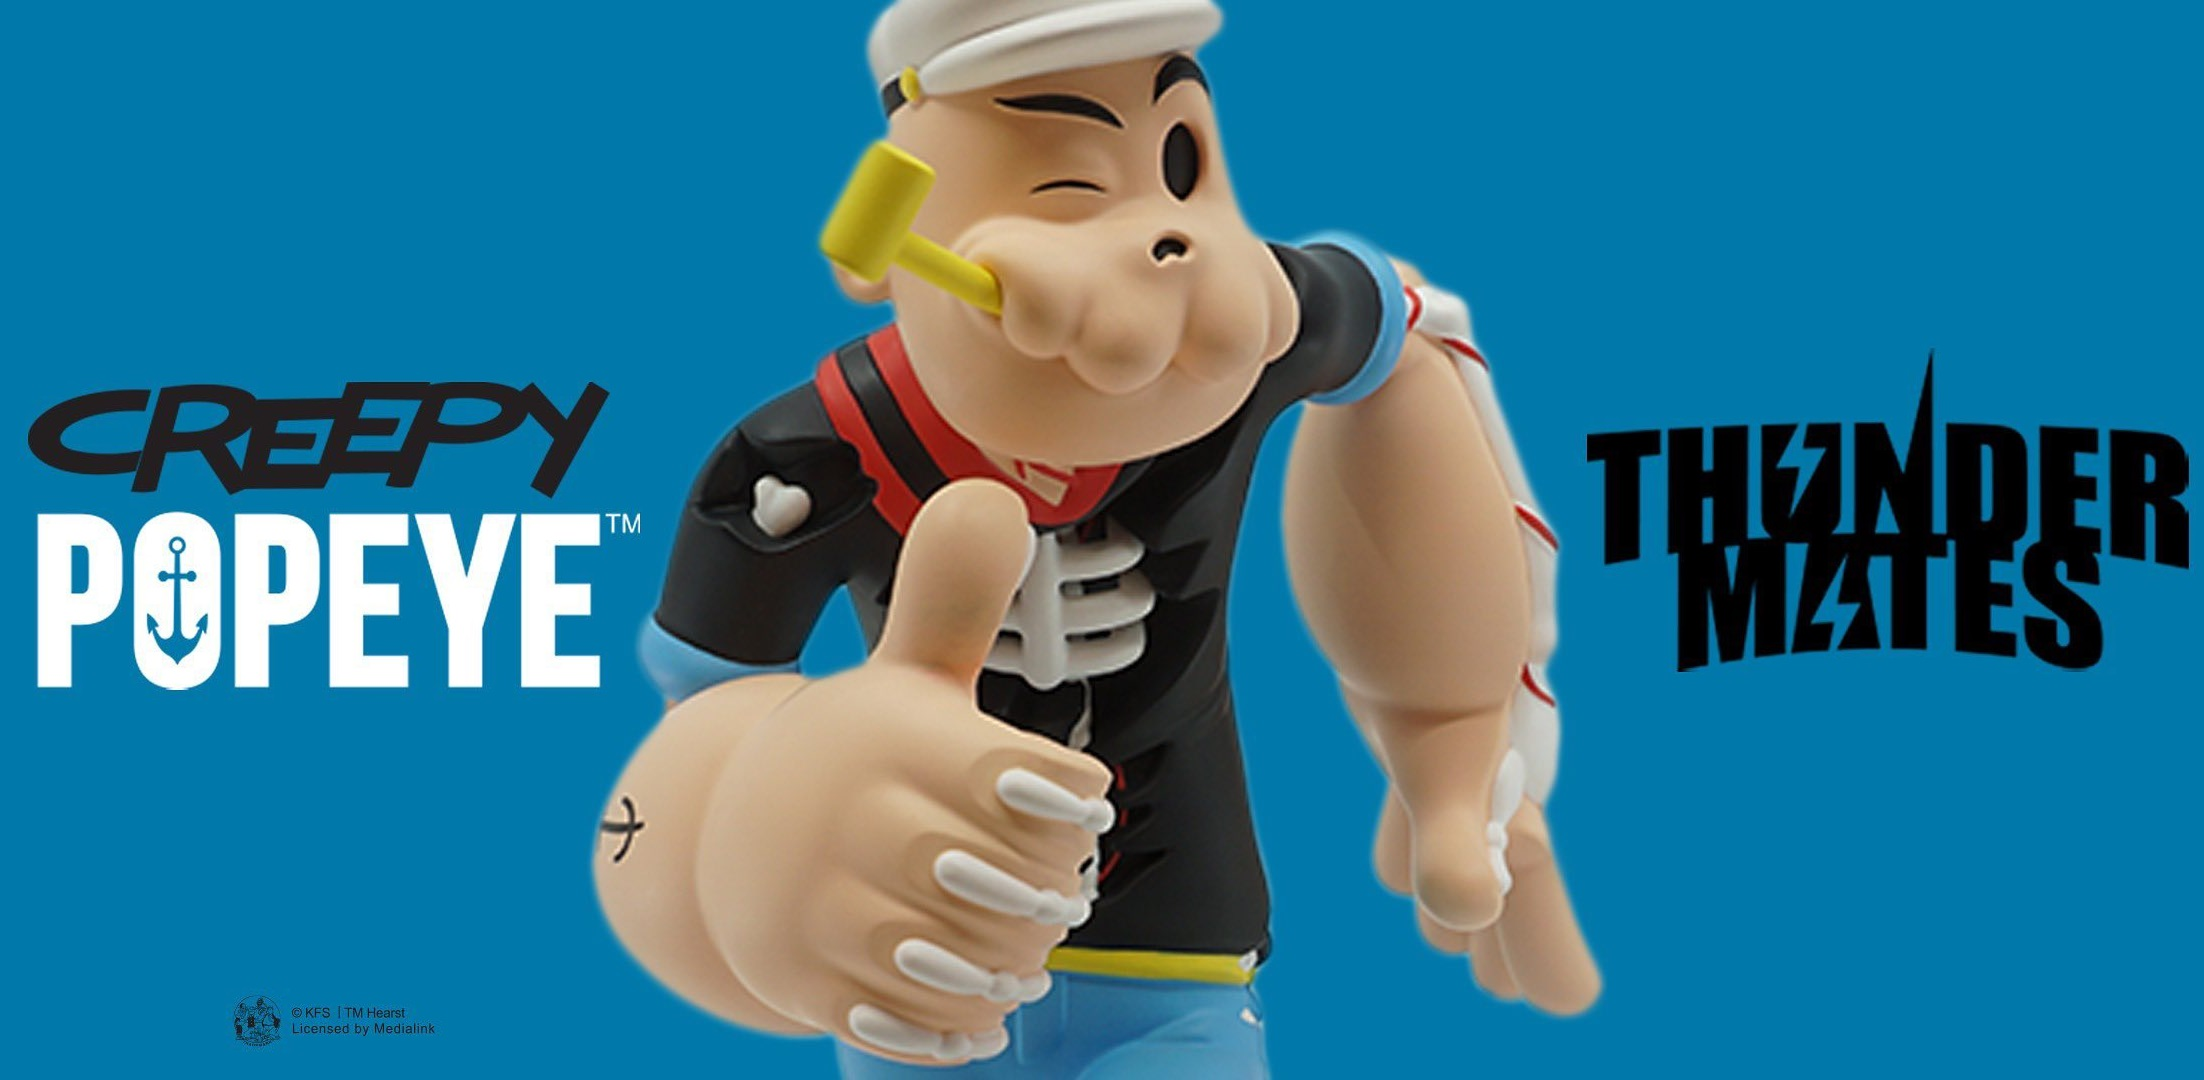 Creepy Popeye Cote Escriva Thunder Mates Art Toy